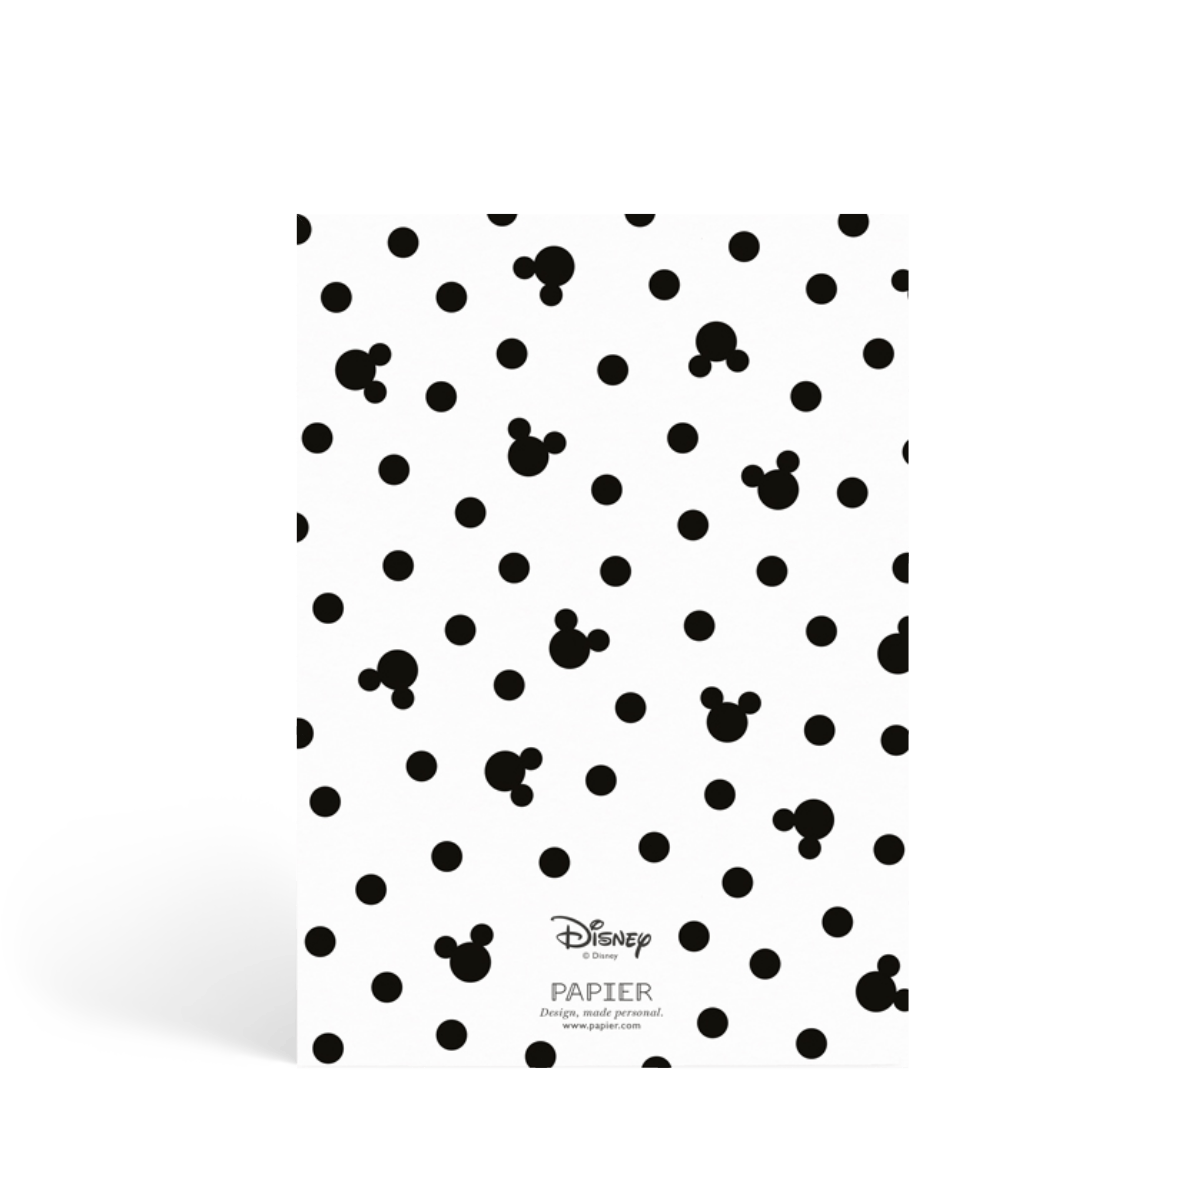 Https%3a%2f%2fwww.papier.com%2fproduct image%2f51341%2f5%2fpolka dot mickey mouse 12573 back 1540477874.png?ixlib=rb 1.1